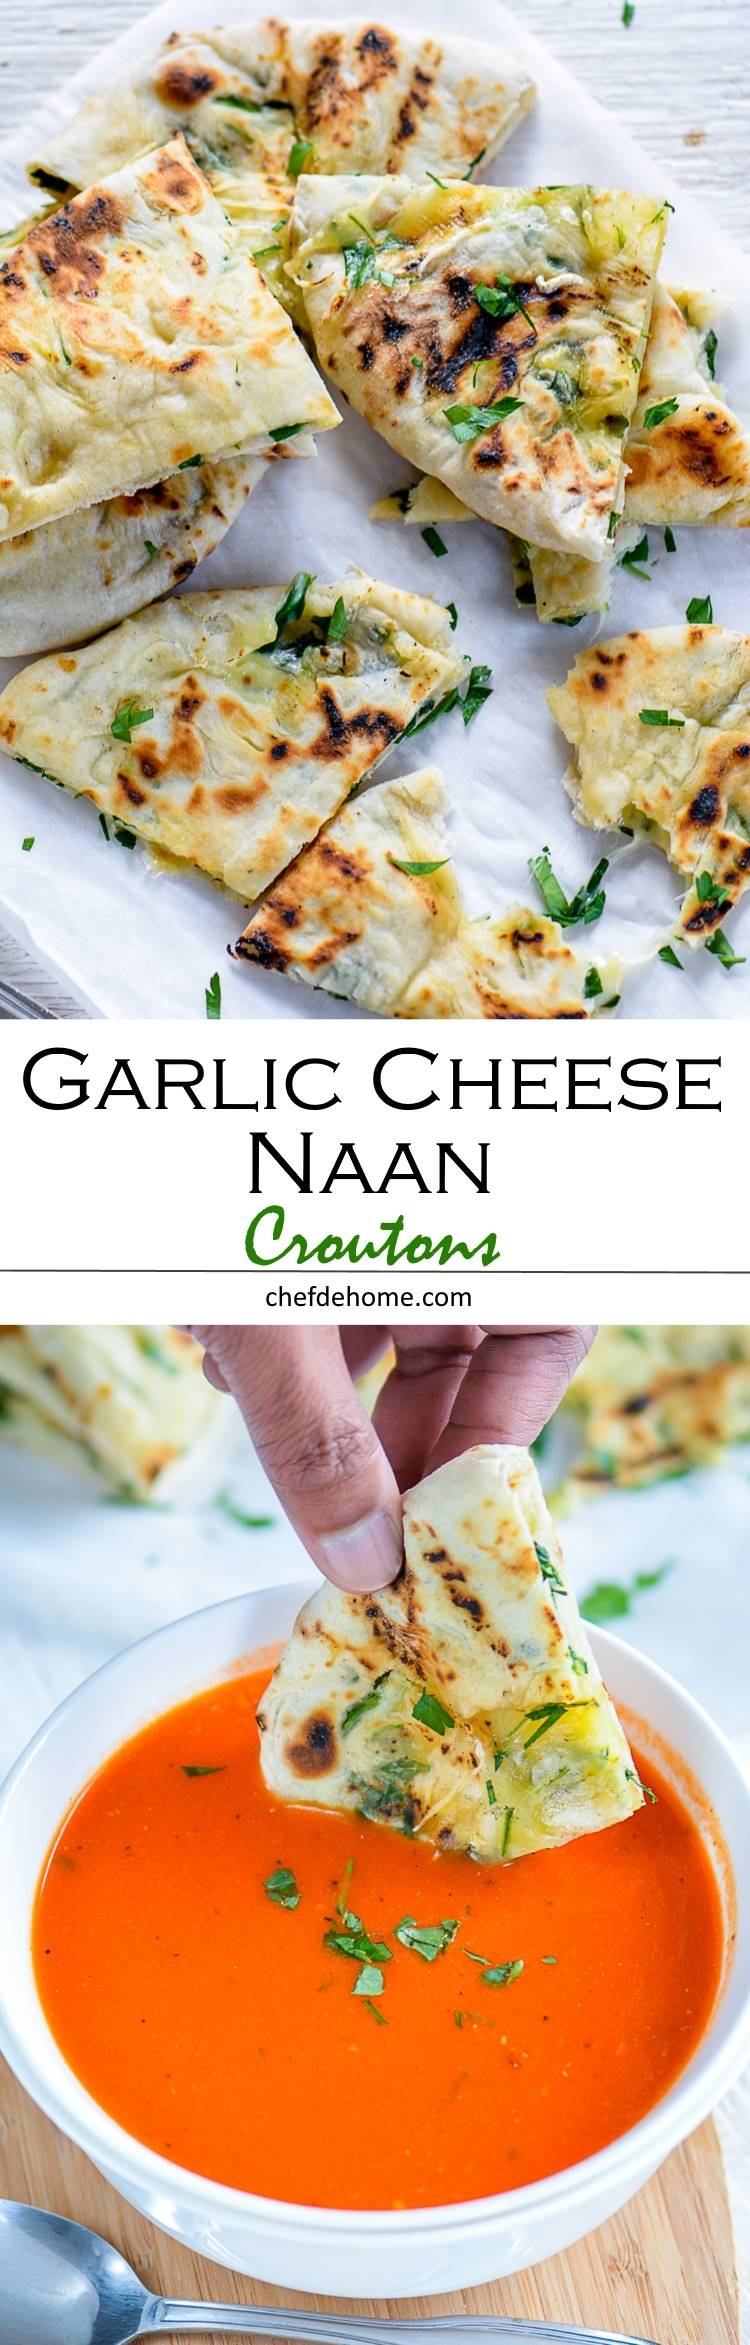 Indian Garlic Naan stuffed with cheese and spinach for homemade cheesy croutons | chefdehome.com